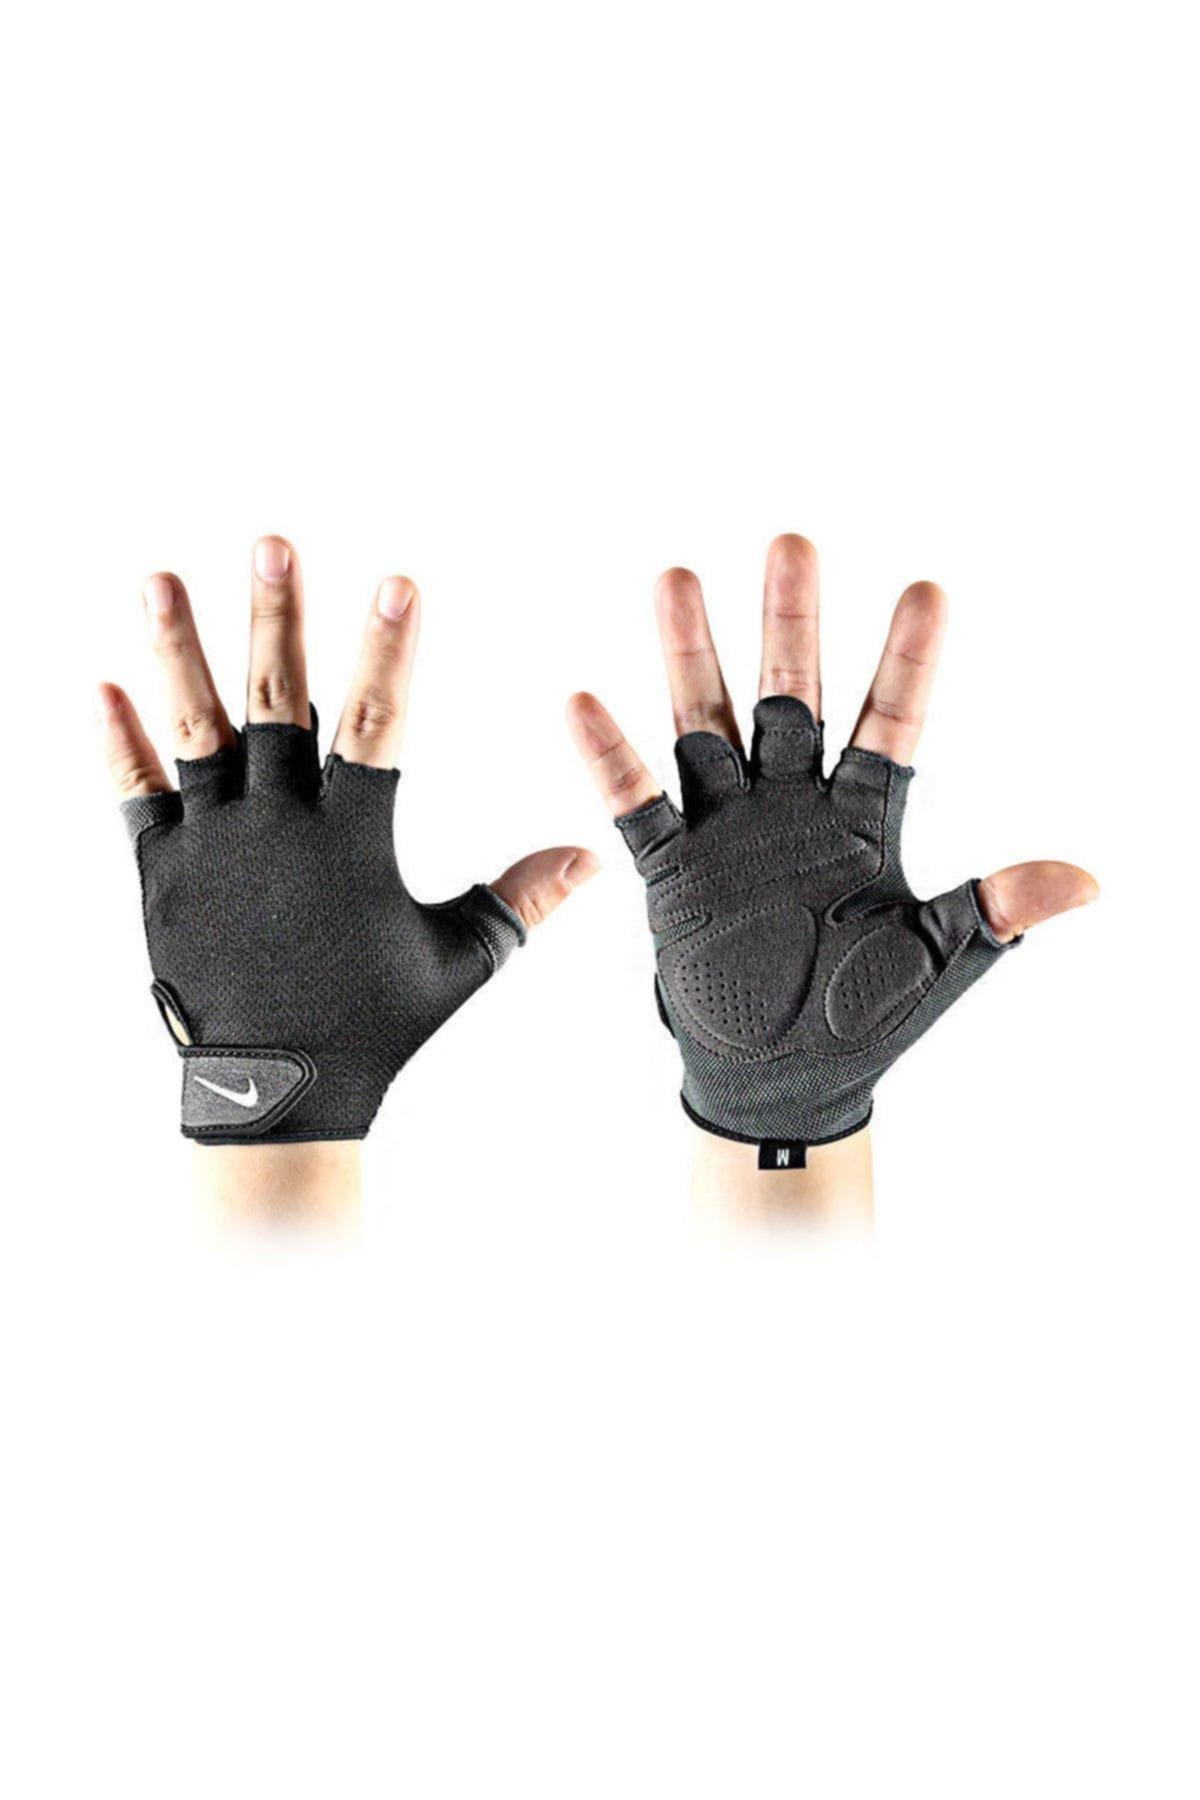 Nike N.LG.C5.057.SL MEN'S ESSENTIAL FITNESS GLOVES FITNESS GYM ELDİVENİ